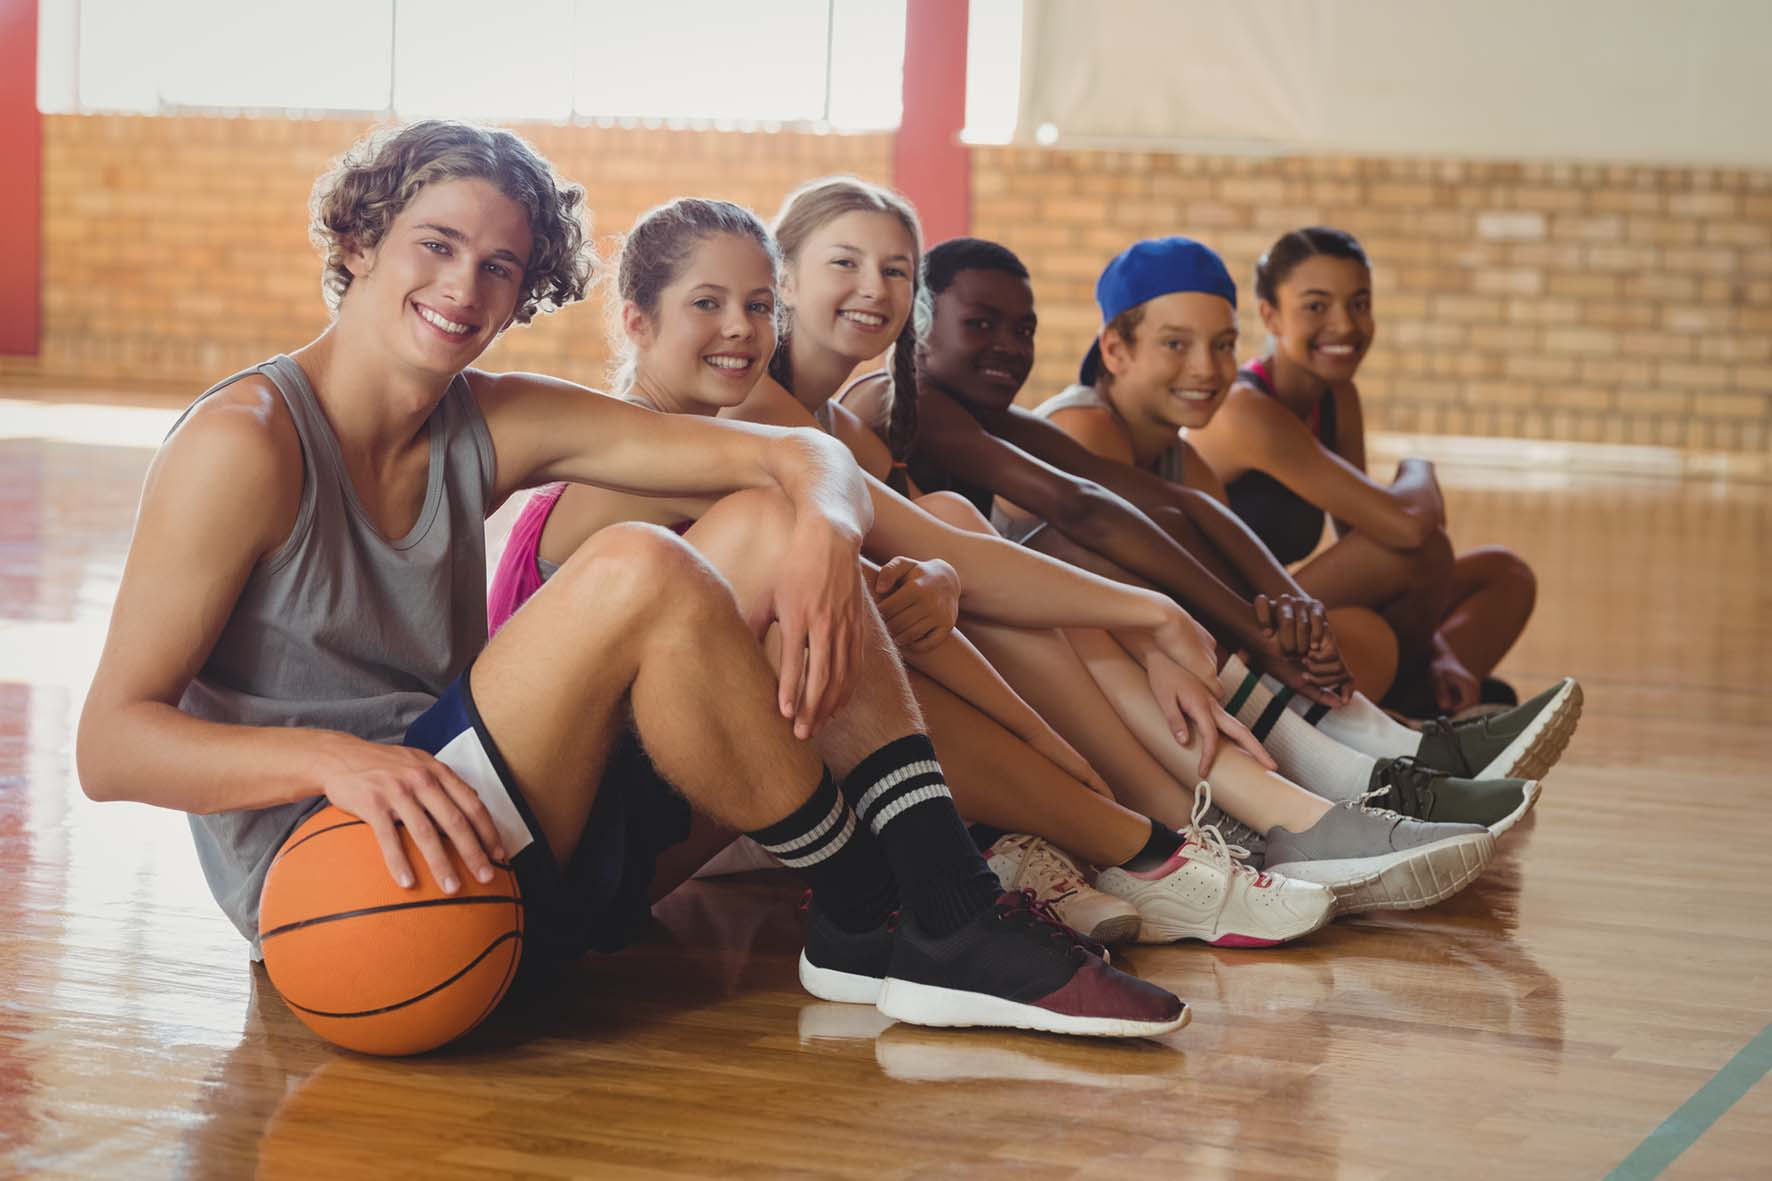 teens in a sports hall with basketball